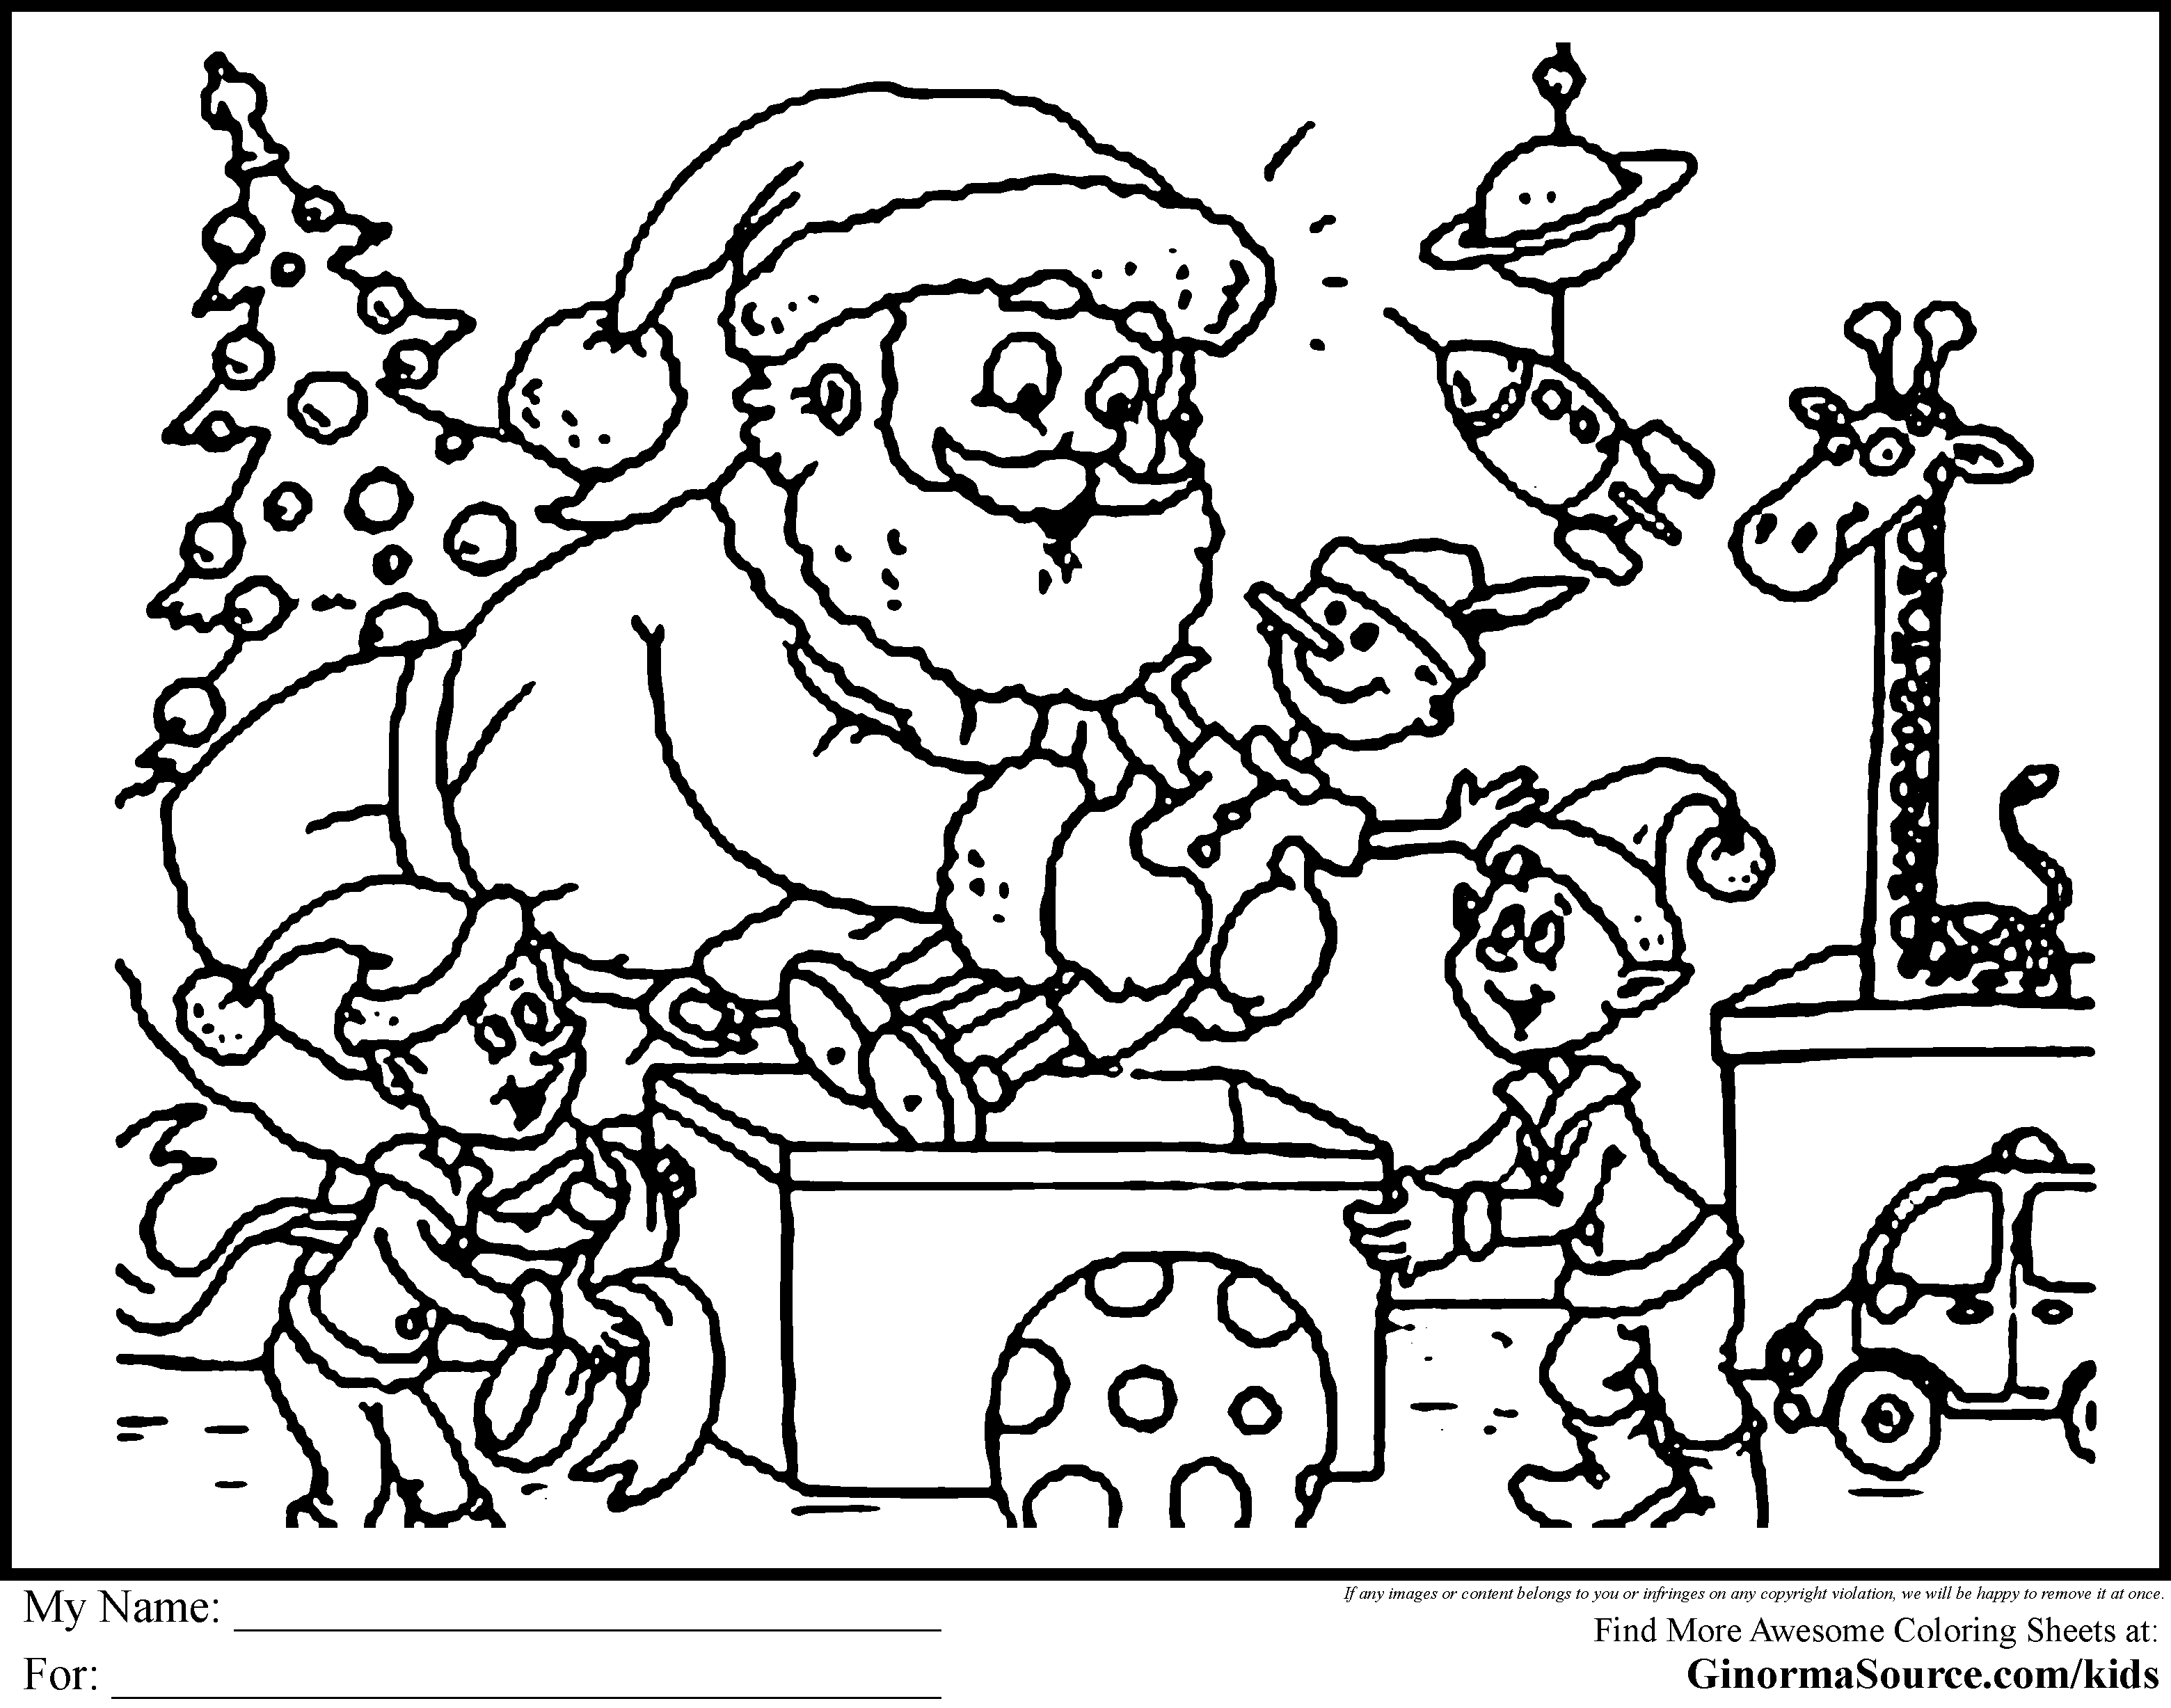 Christmas Coloring Pages Printable Here Santa Is Supervising The Elves On Finishing E Santa Coloring Pages Christmas Coloring Sheets Christmas Coloring Pages